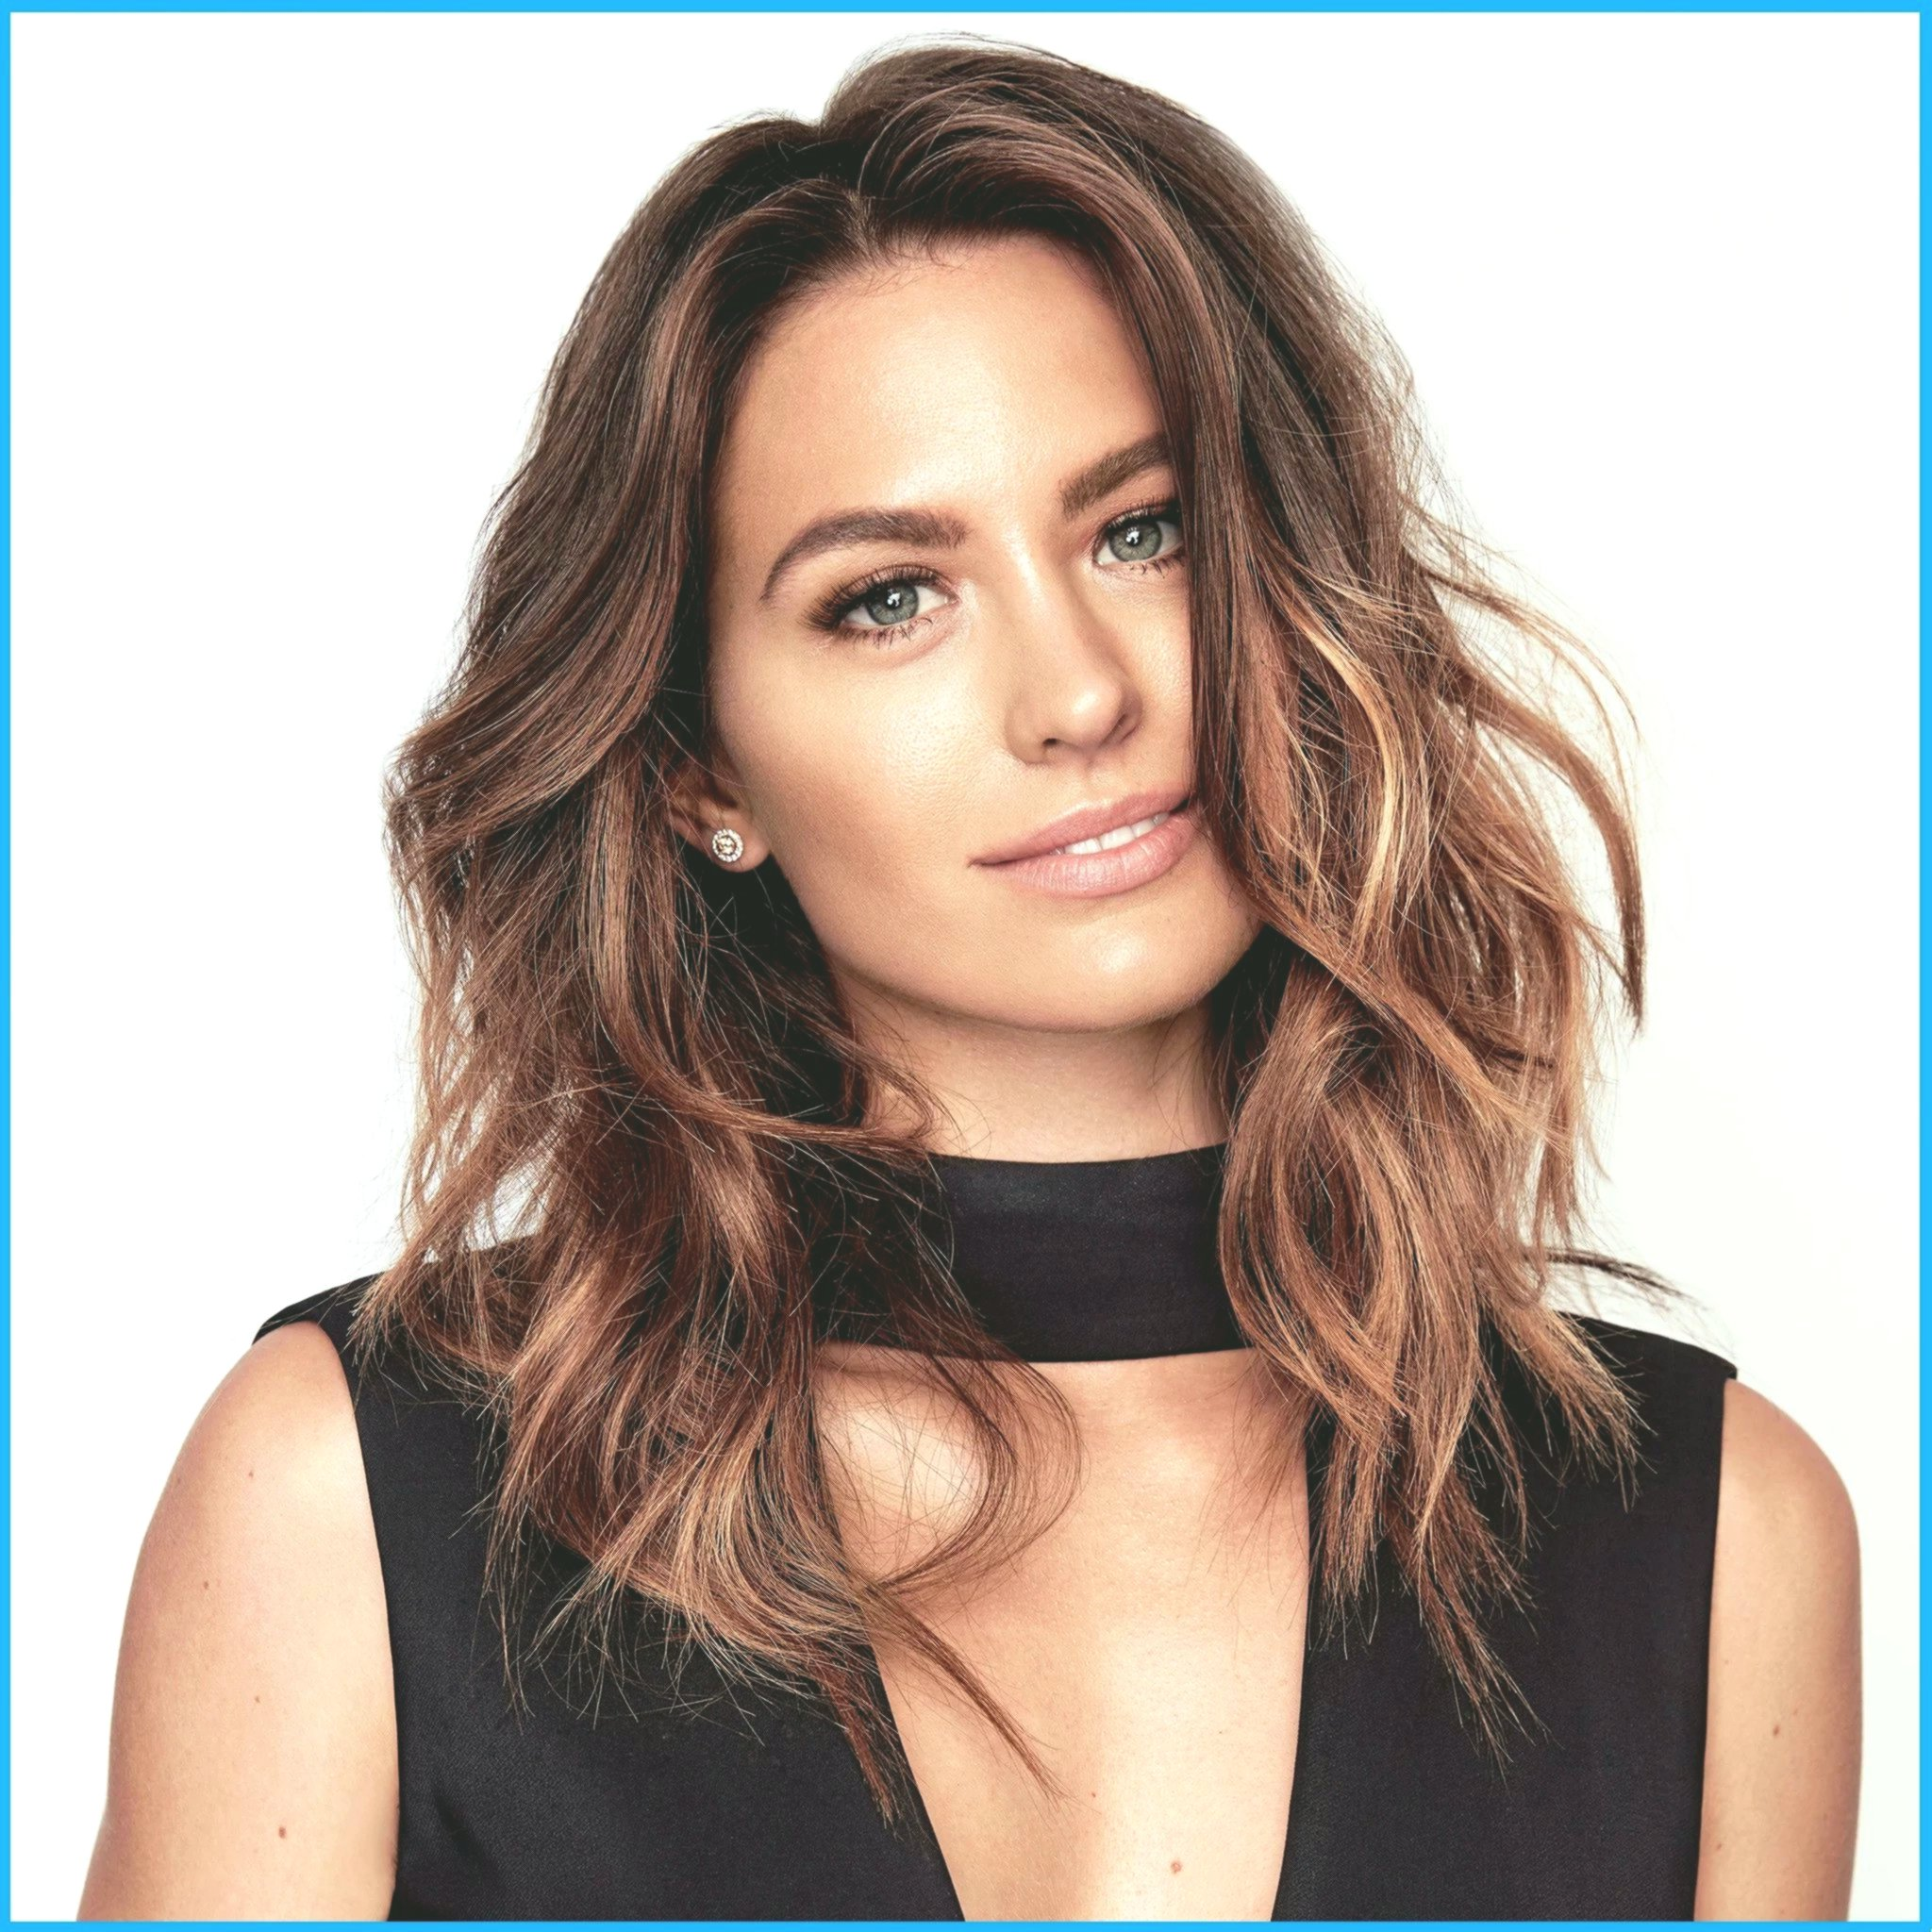 Lovely Modern Hairstyles Women Photo Picture Inspirational Modern Hairstyles Women Design